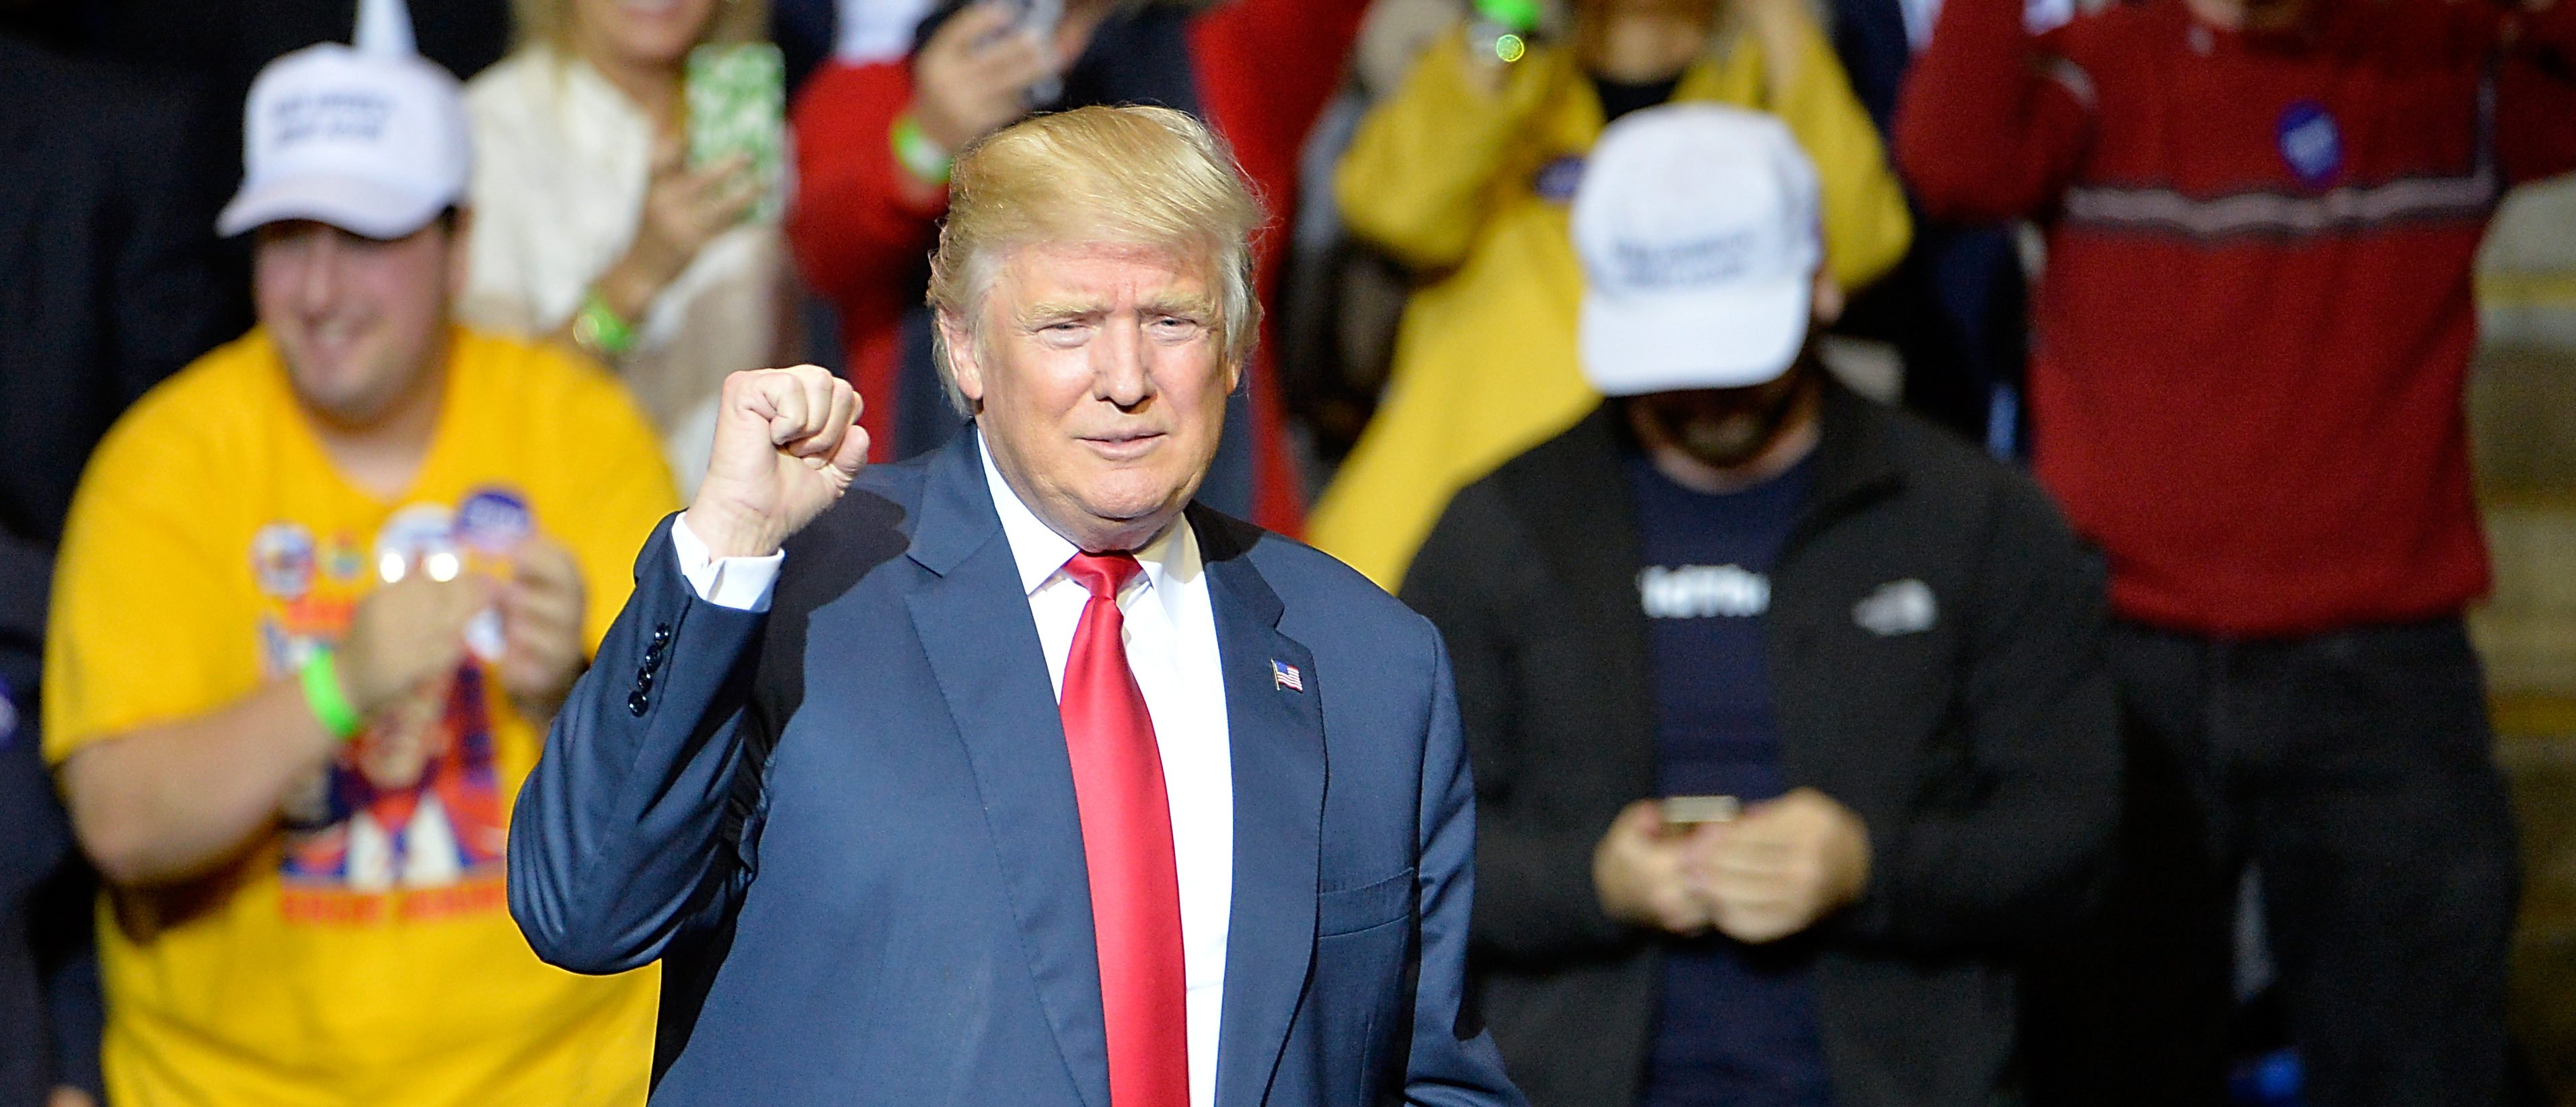 FAYETTEVILLE, NC - DECEMBER 06: President-elect Donald Trump pumps his fist to cheers at Crown Coliseum on December 6, 2016 in Fayetteville, North Carolina. Trump took time off from selecting the cabinet for his incoming administration to celebrate his victory in the general election. (Photo by Sara D. Davis/Getty Images)